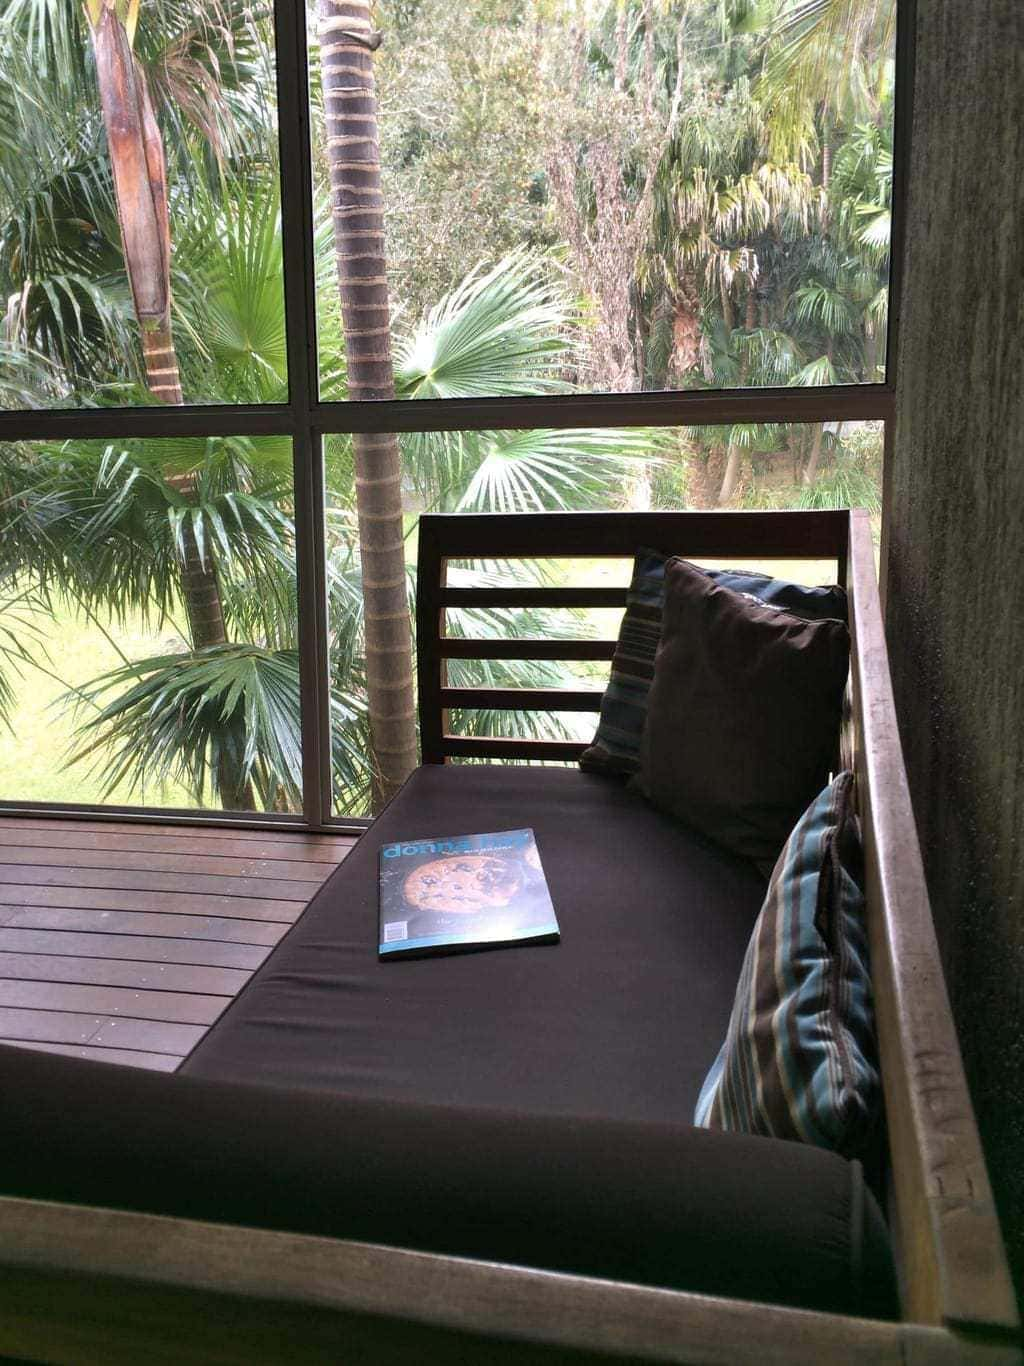 The daybed at Angourie Rainforest Retreat was so comfortable